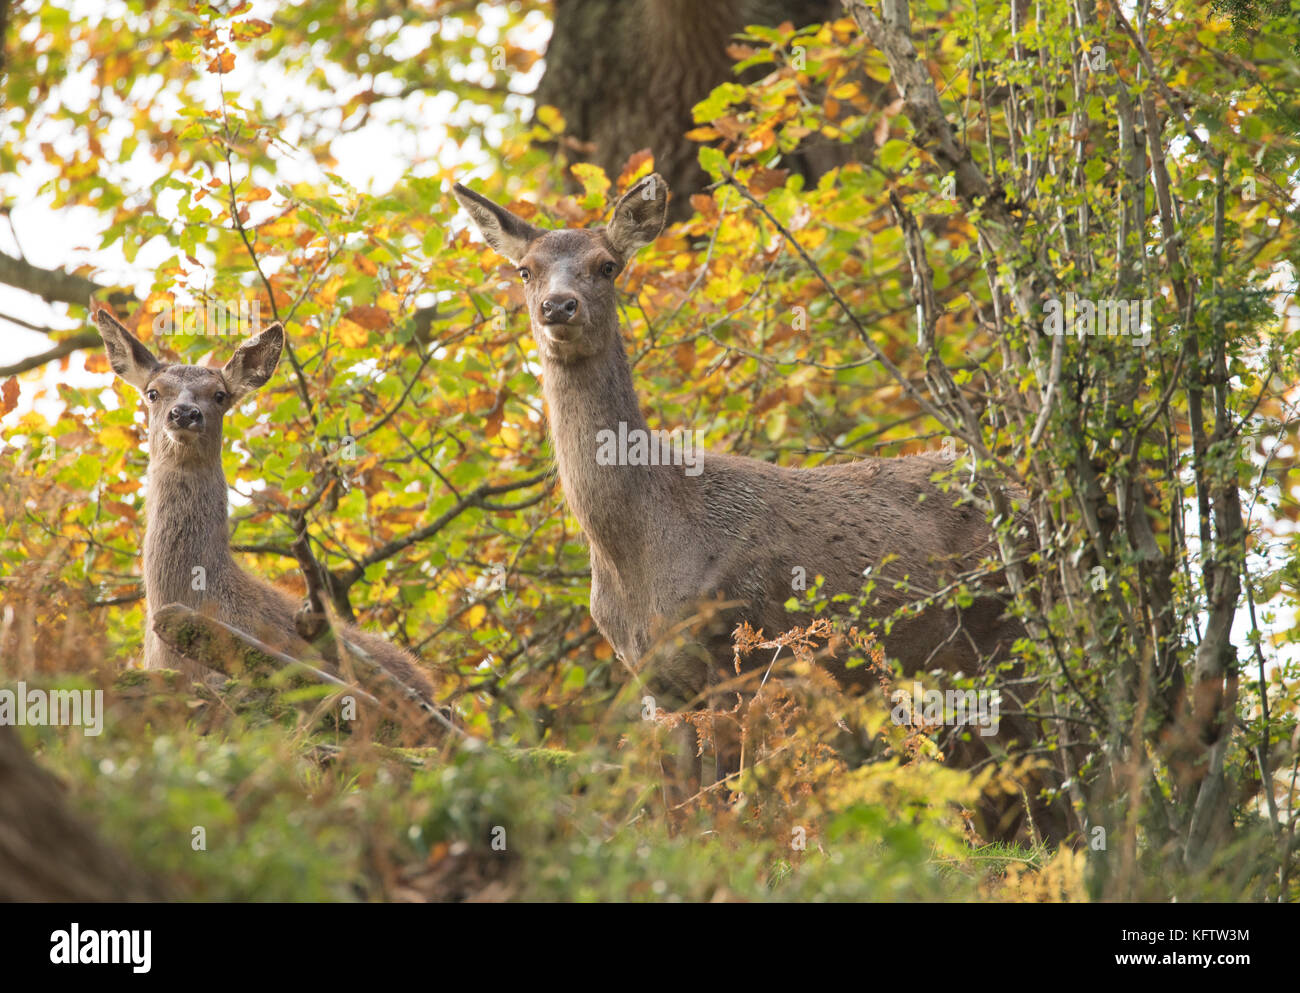 Red deer hinds on the alert in woodland, Wales, UK. - Stock Image